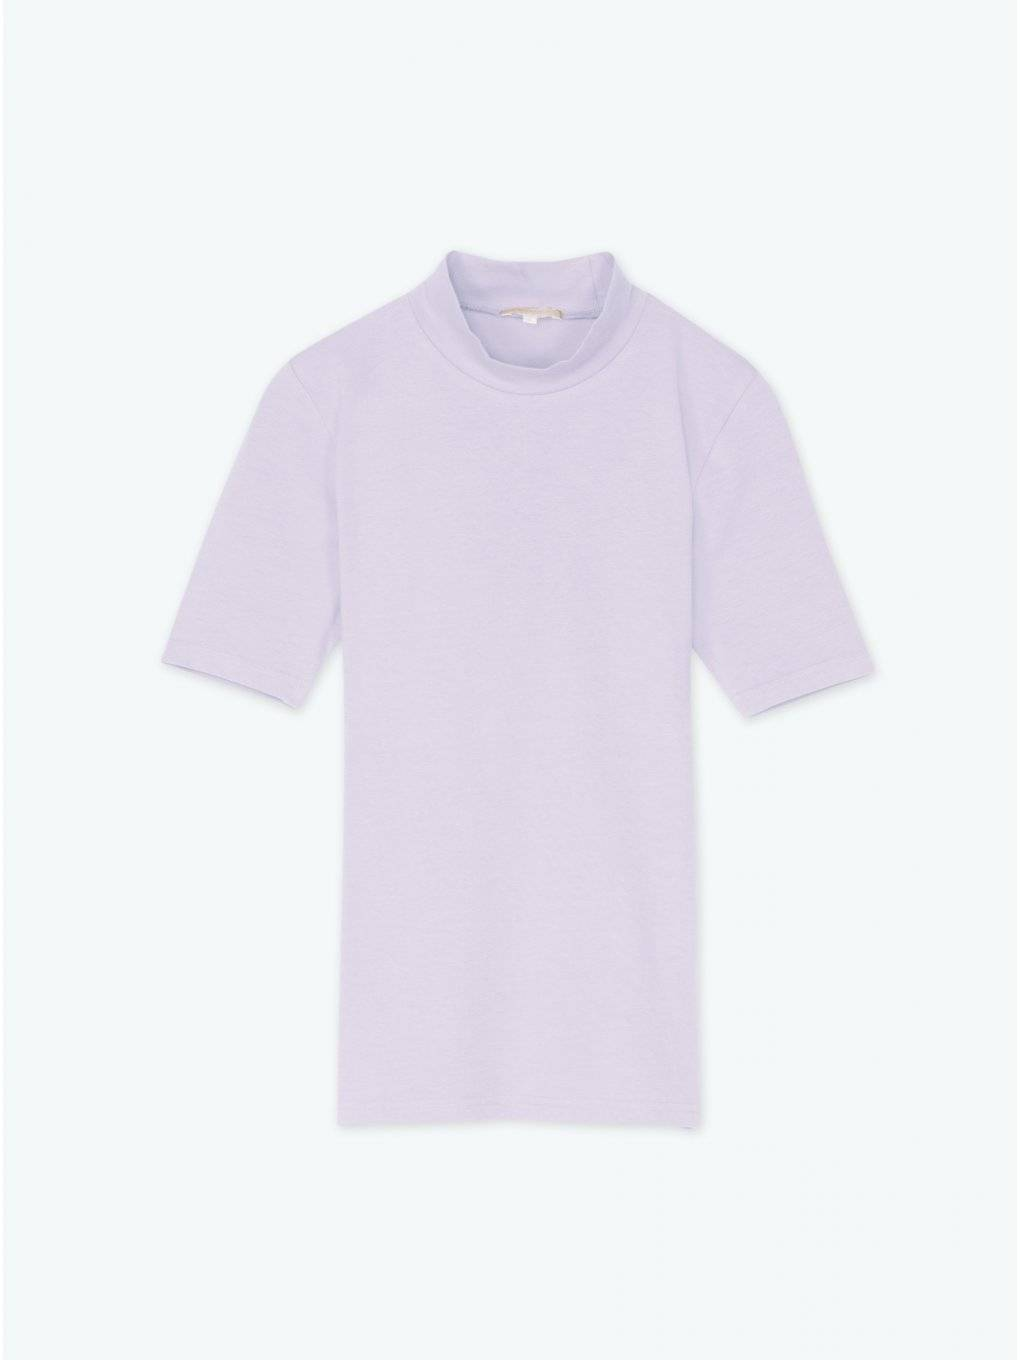 Plain short sleeve top